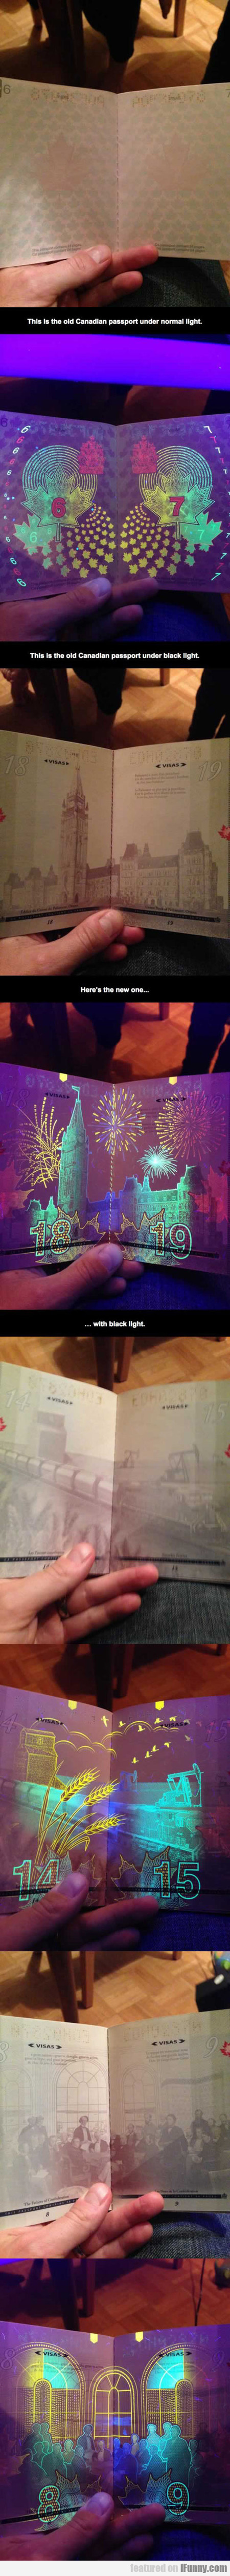 Canadian Passport Under Blacklight